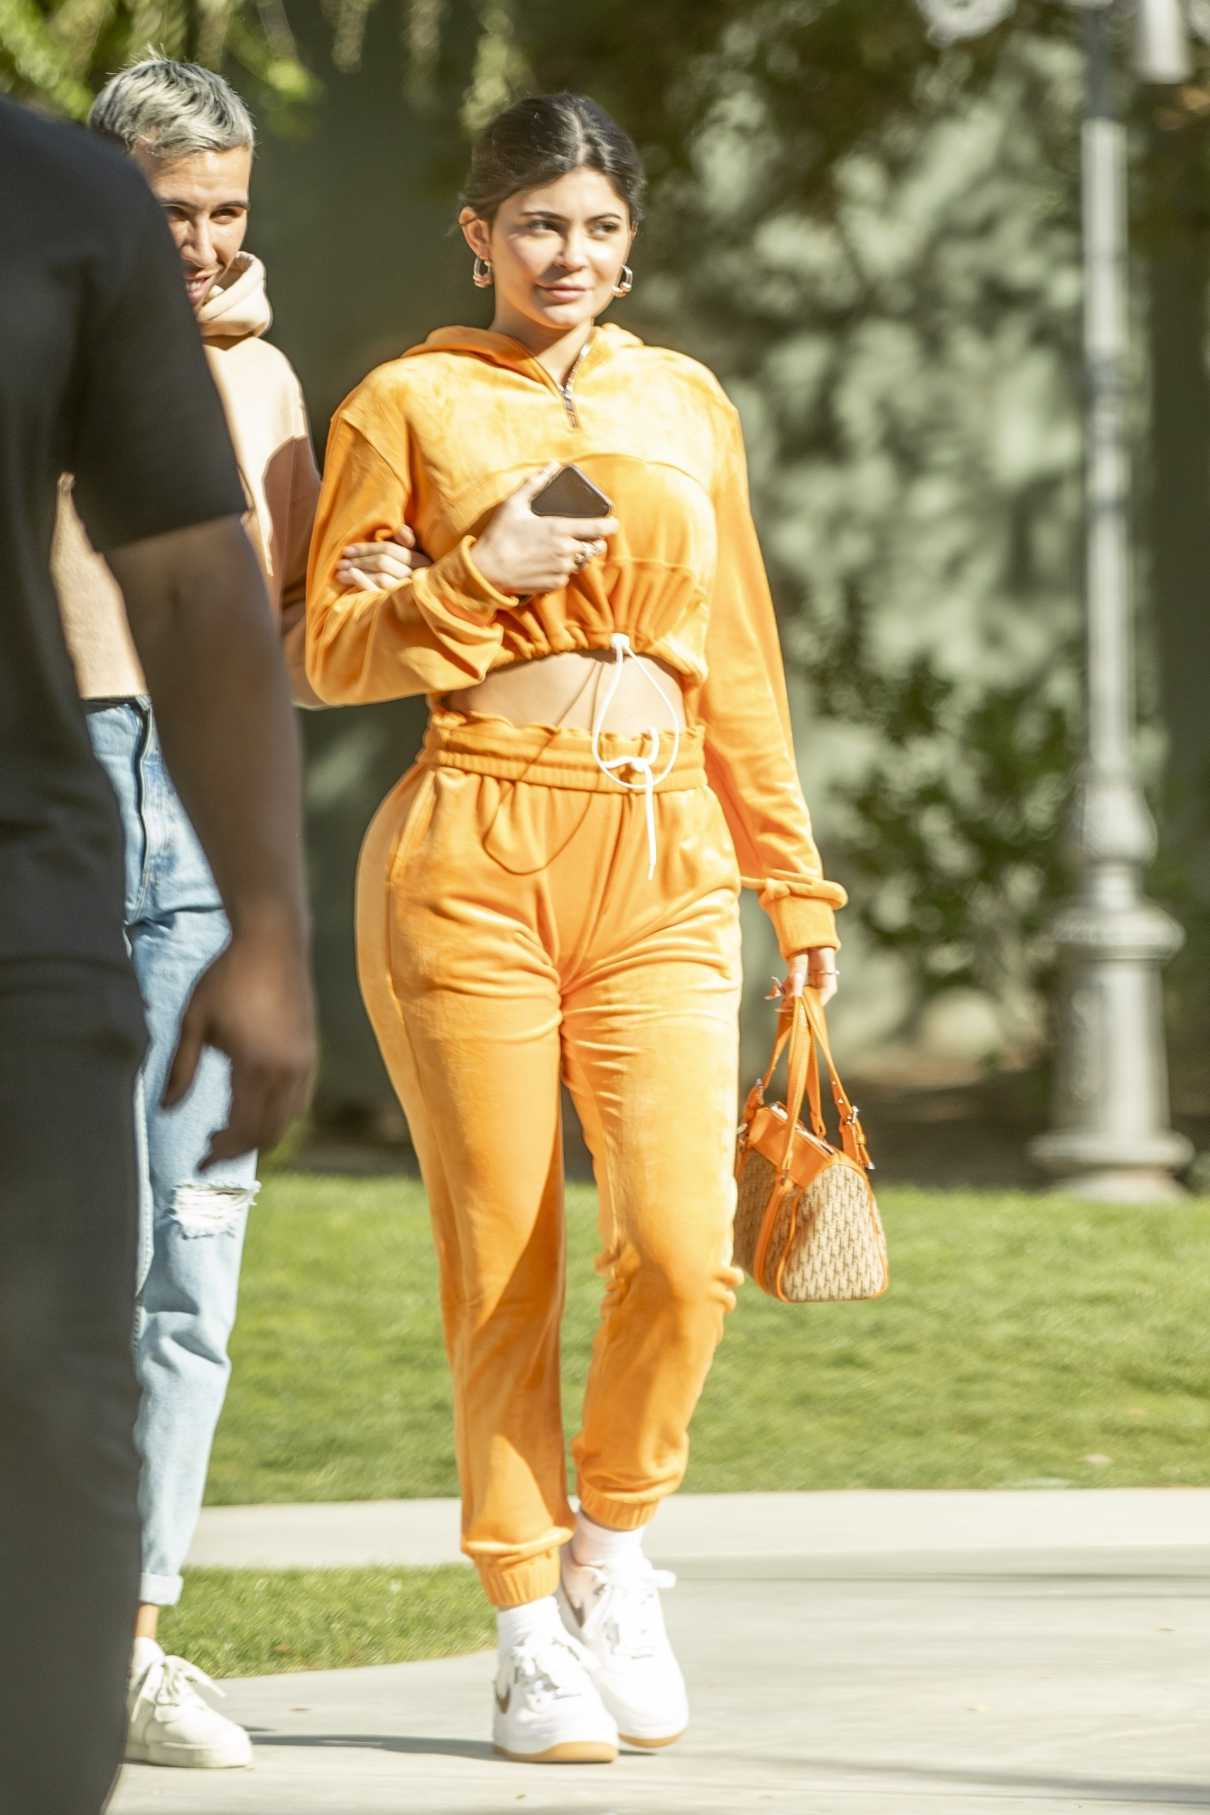 Kylie Jenner in a Yellow Tracksuit